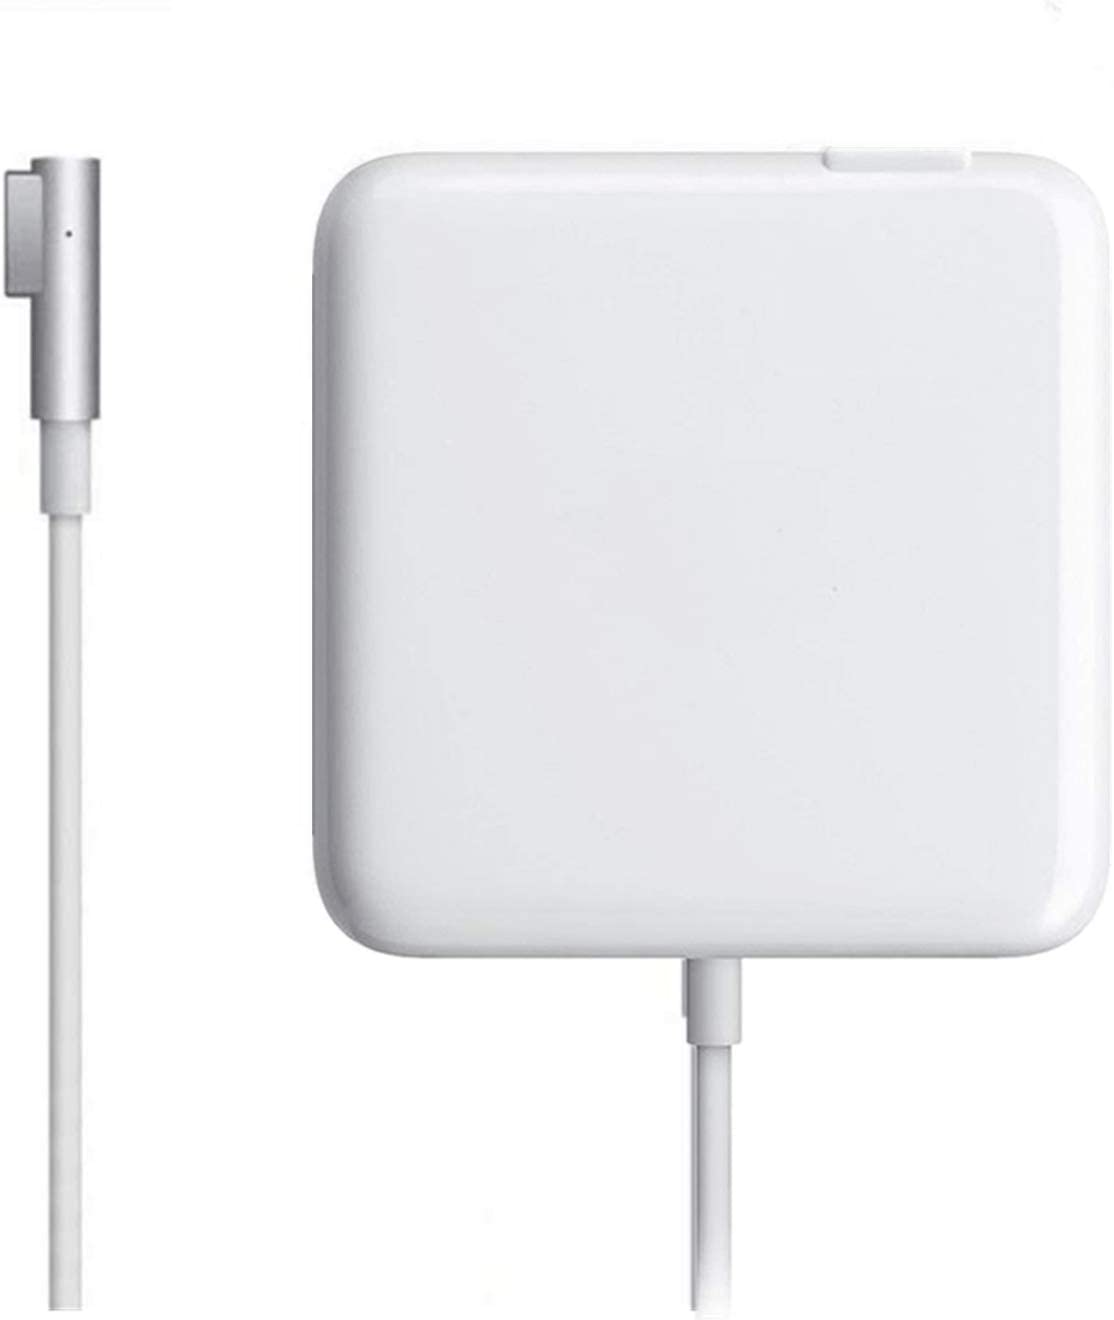 Compatible with MacBook Pro Charger, 60W Power Adapter, L-Shaped Connector Charger for Mac Book and 13-inch Mac Book Pro (Before mid-2012 Model)